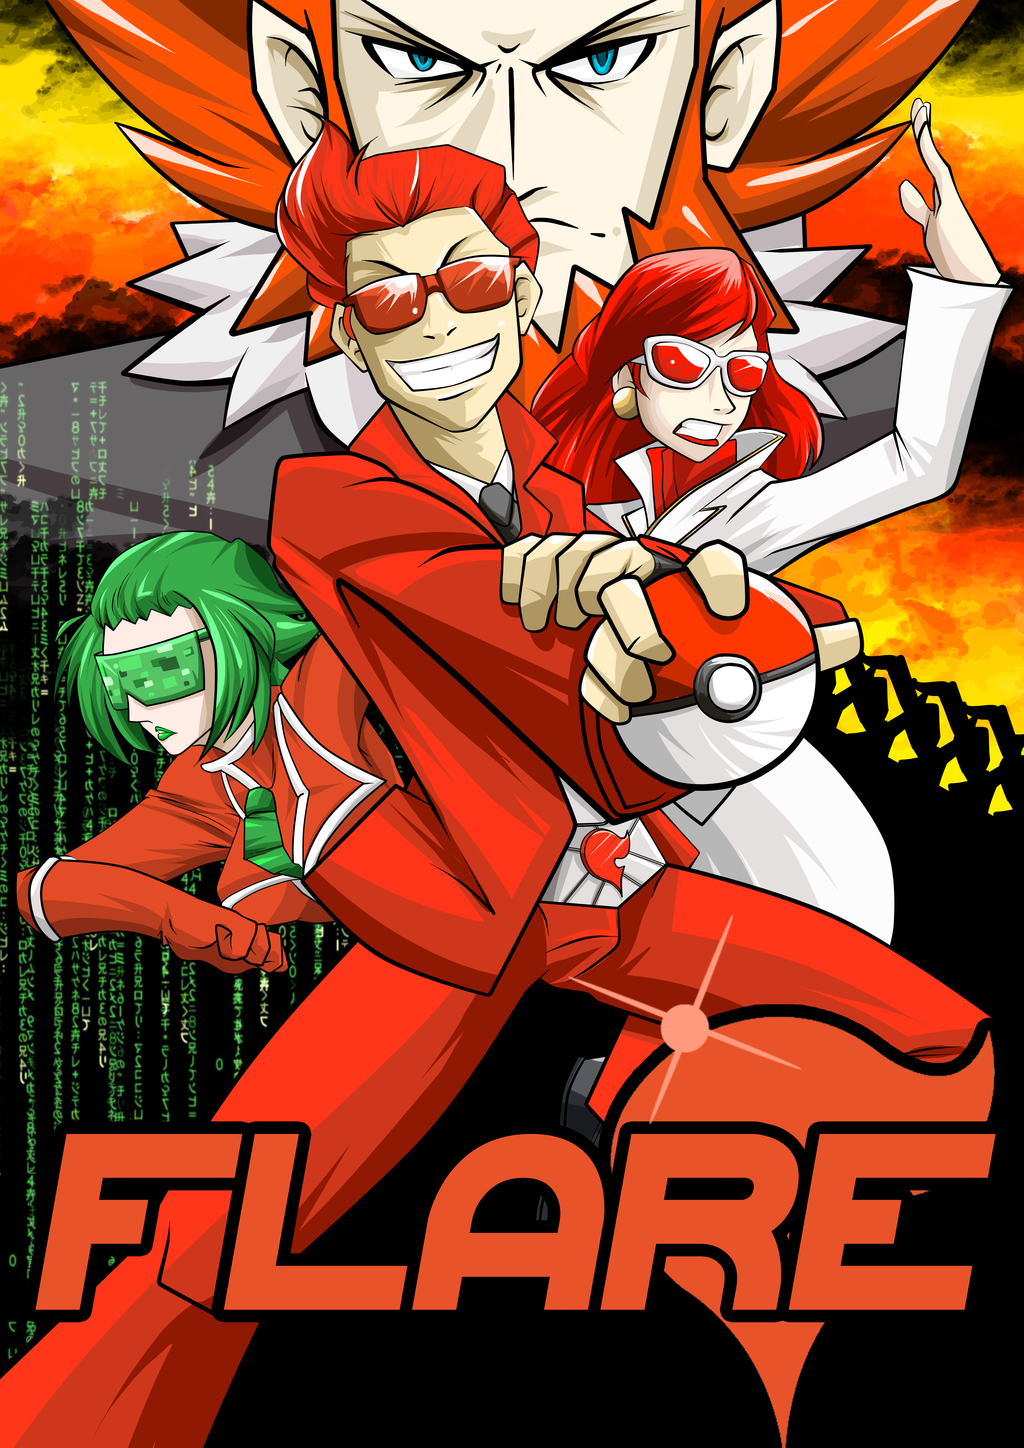 Most recent image: Team Flare